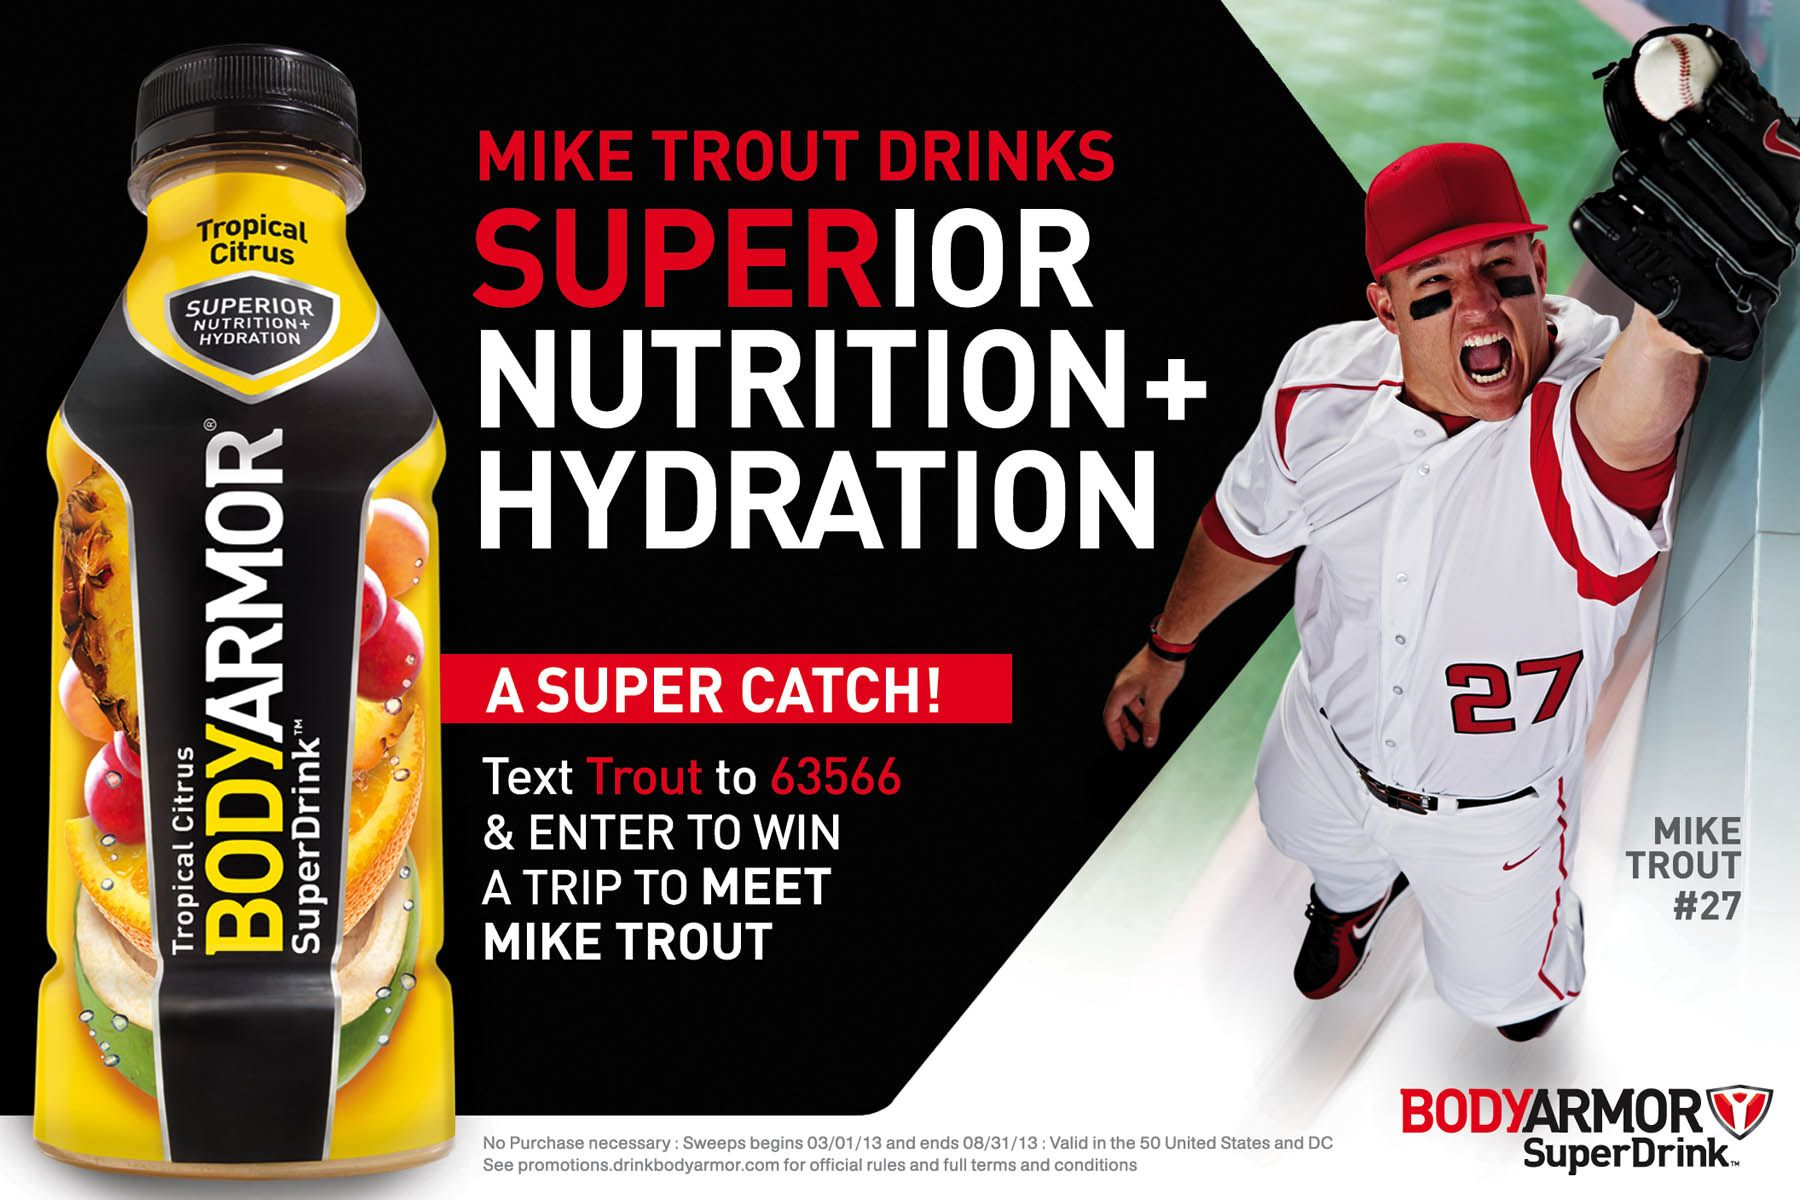 Mike Trout photographed for BodyArmor sports drink by